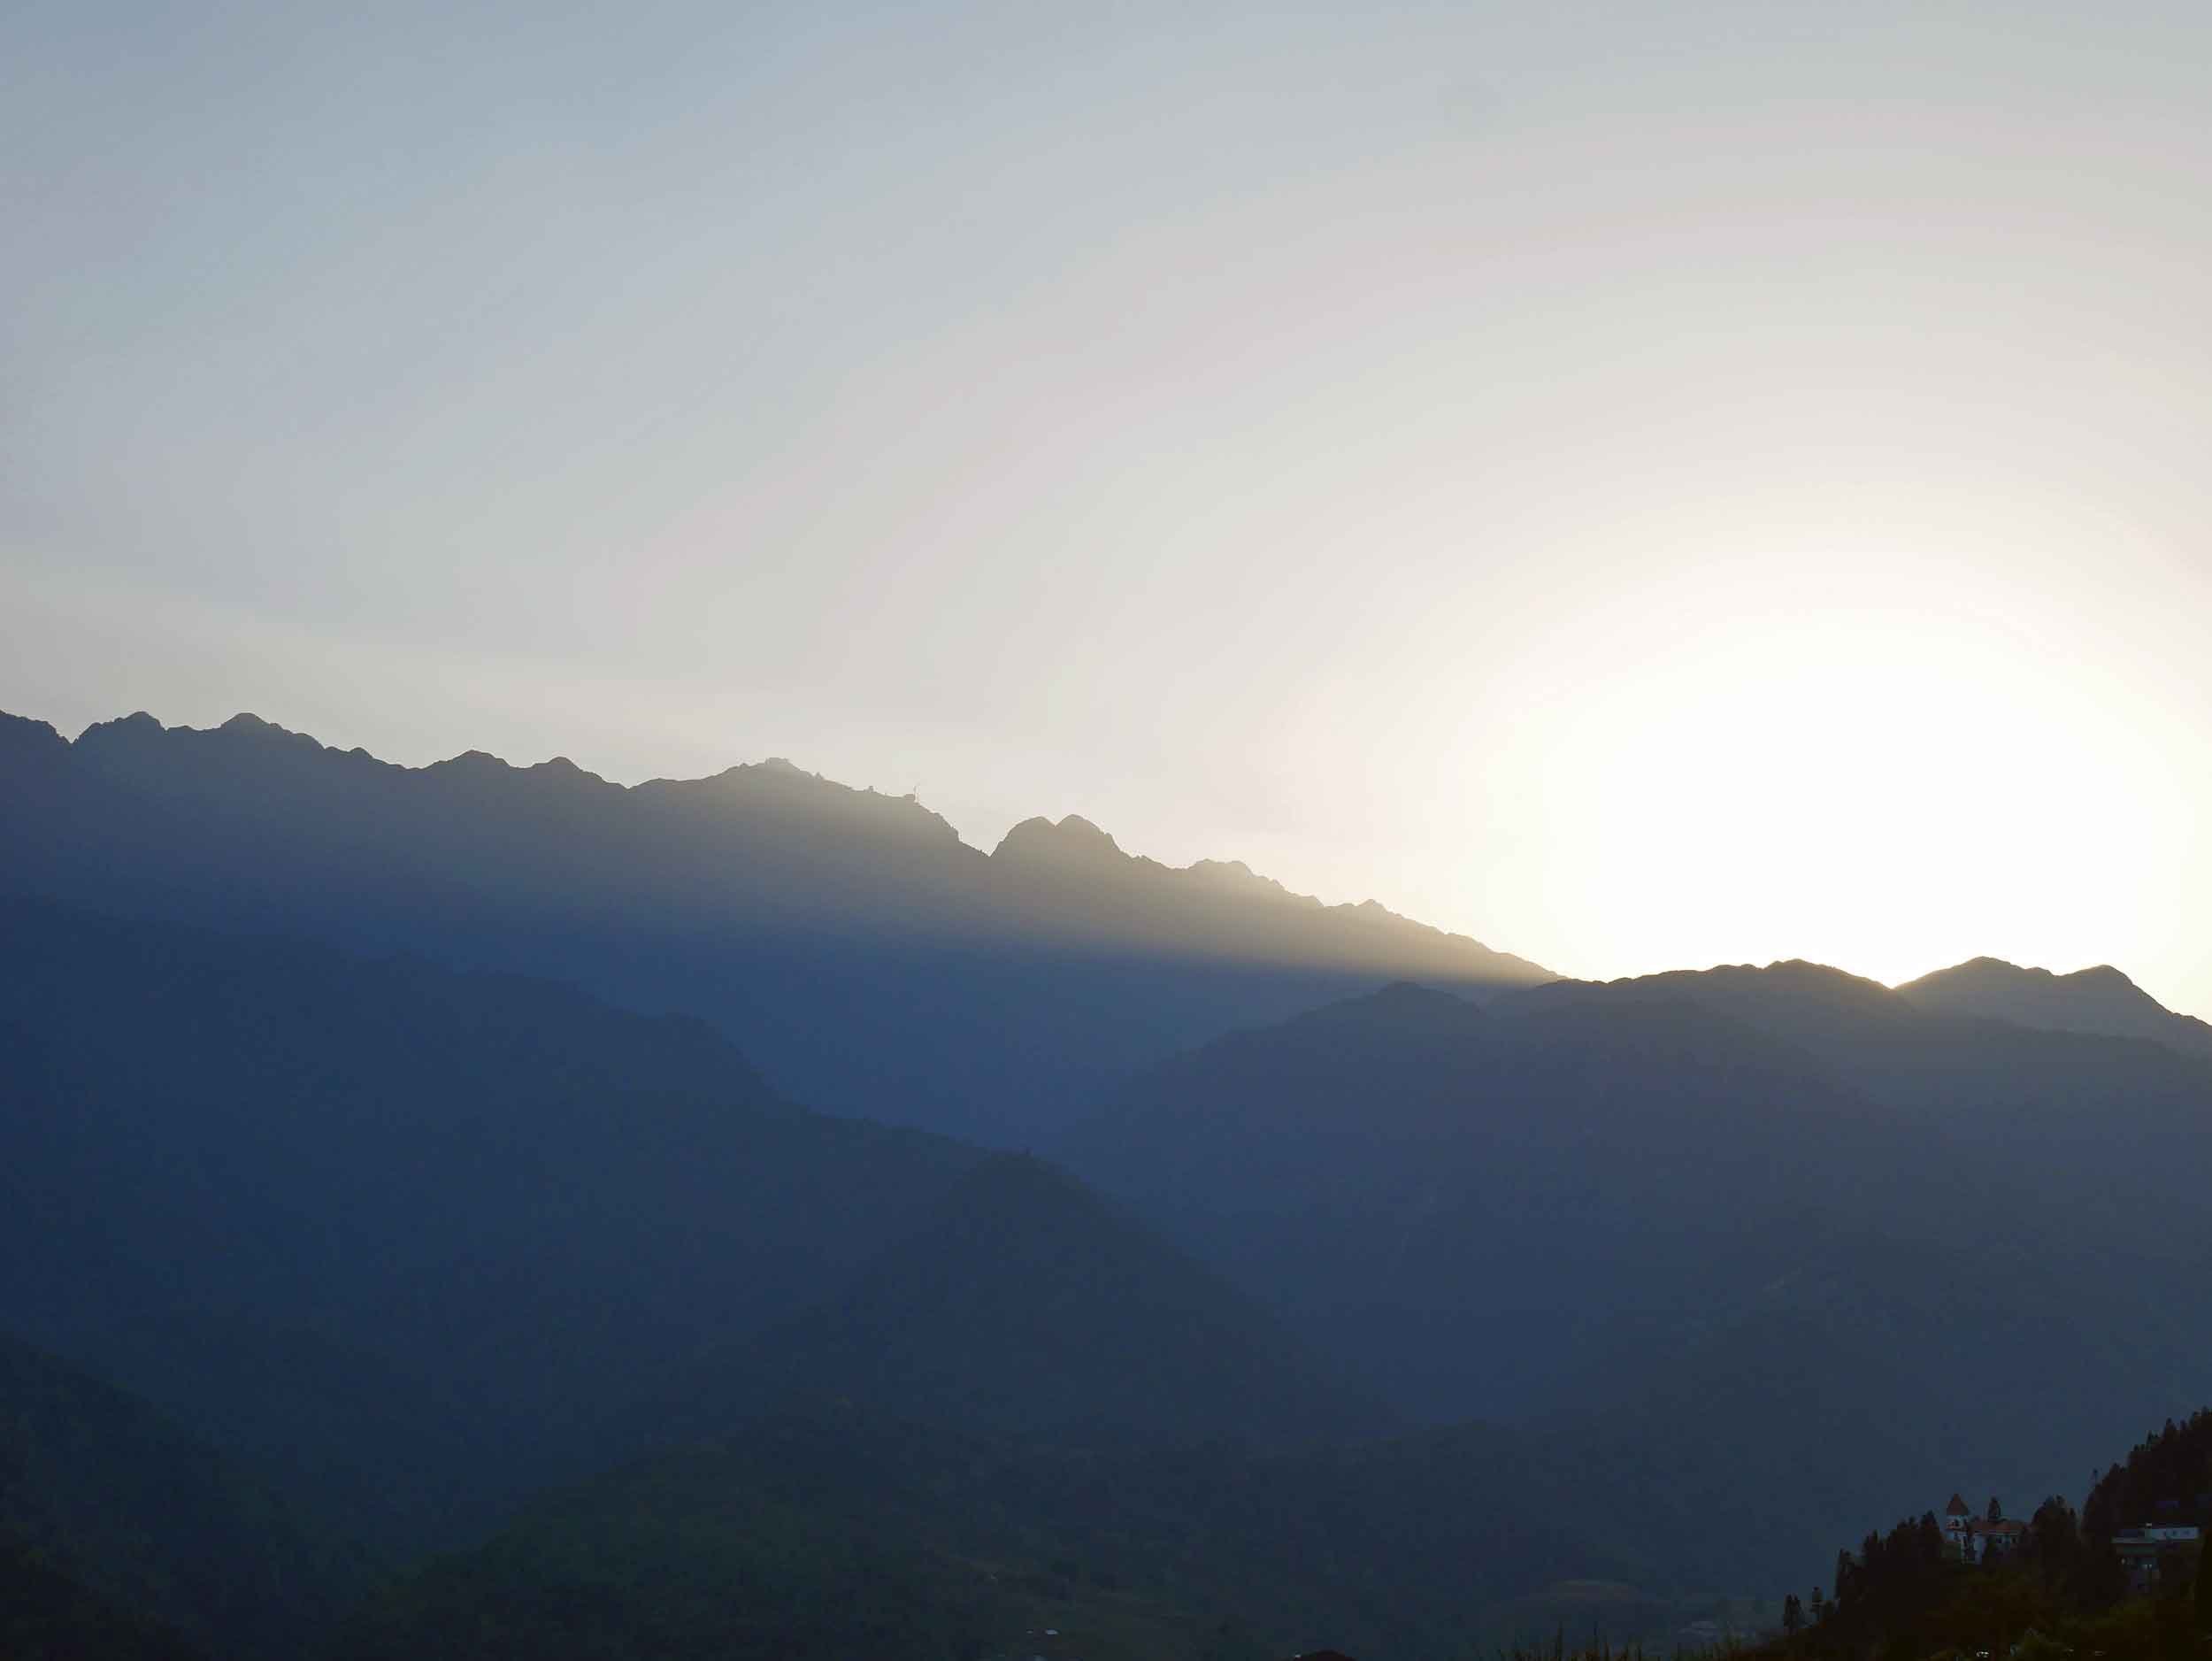 View from our hotel of the sun setting over the Hoàng Liên Son mountain ranges, which surround Sapa village (Mar 22).